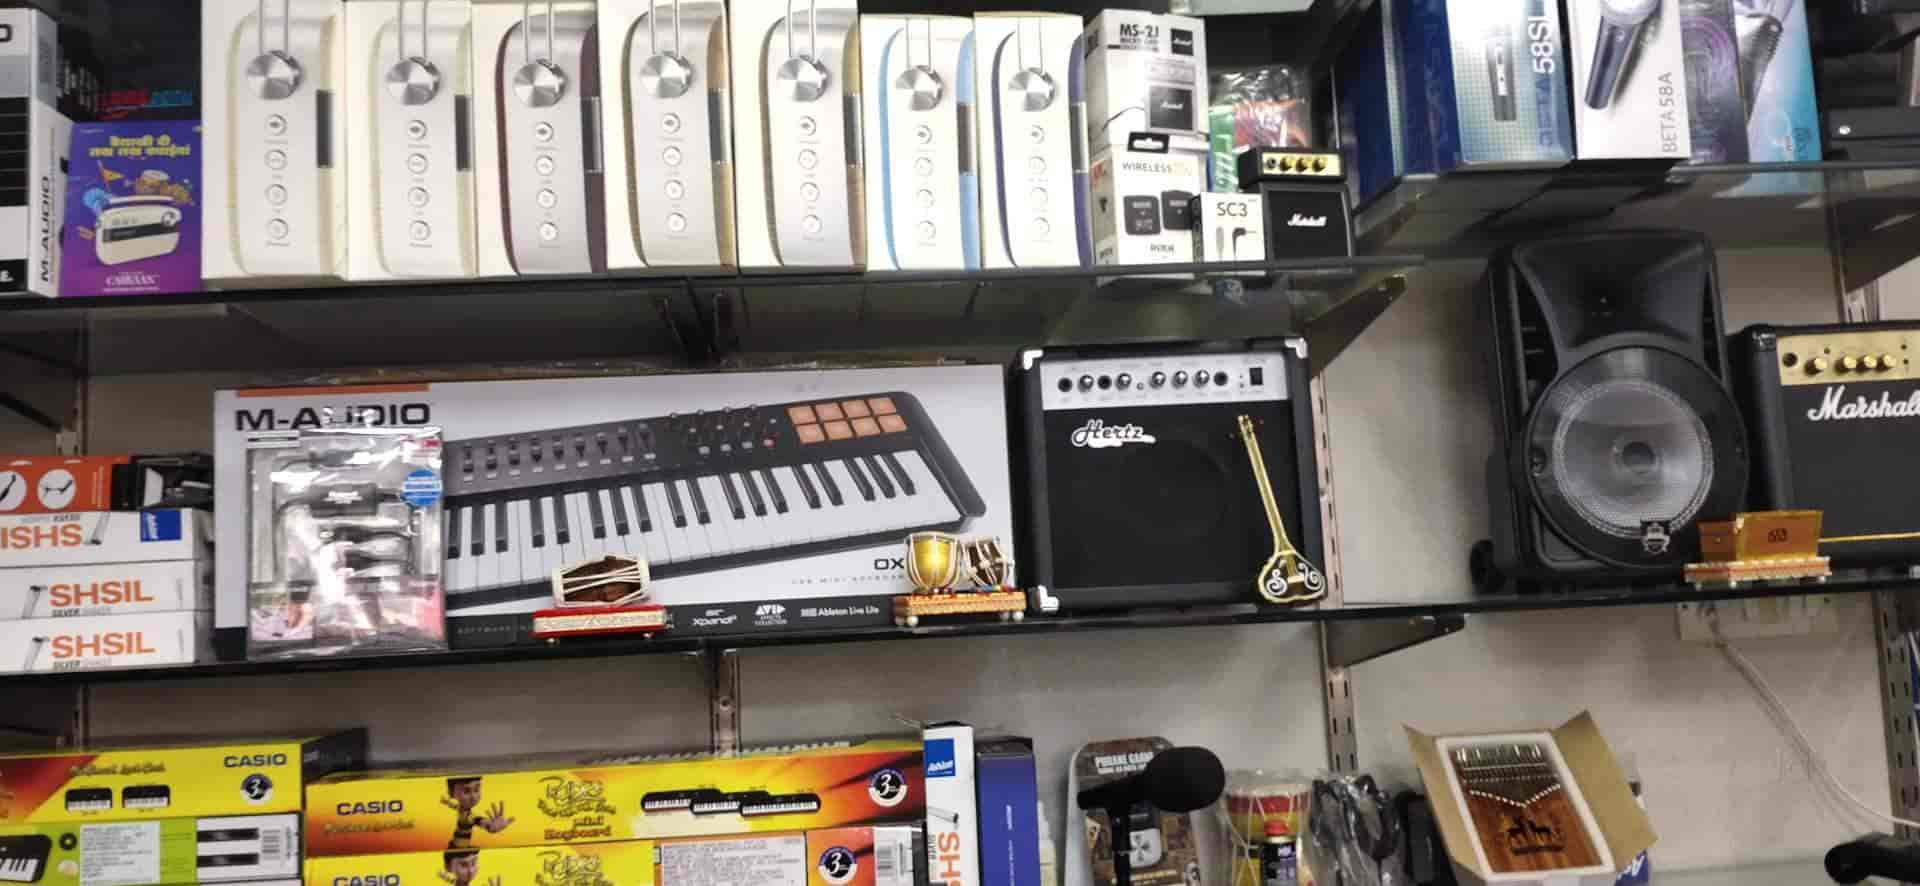 Rgs Music, Kalkaji - Musical Instrument Dealers in delhi